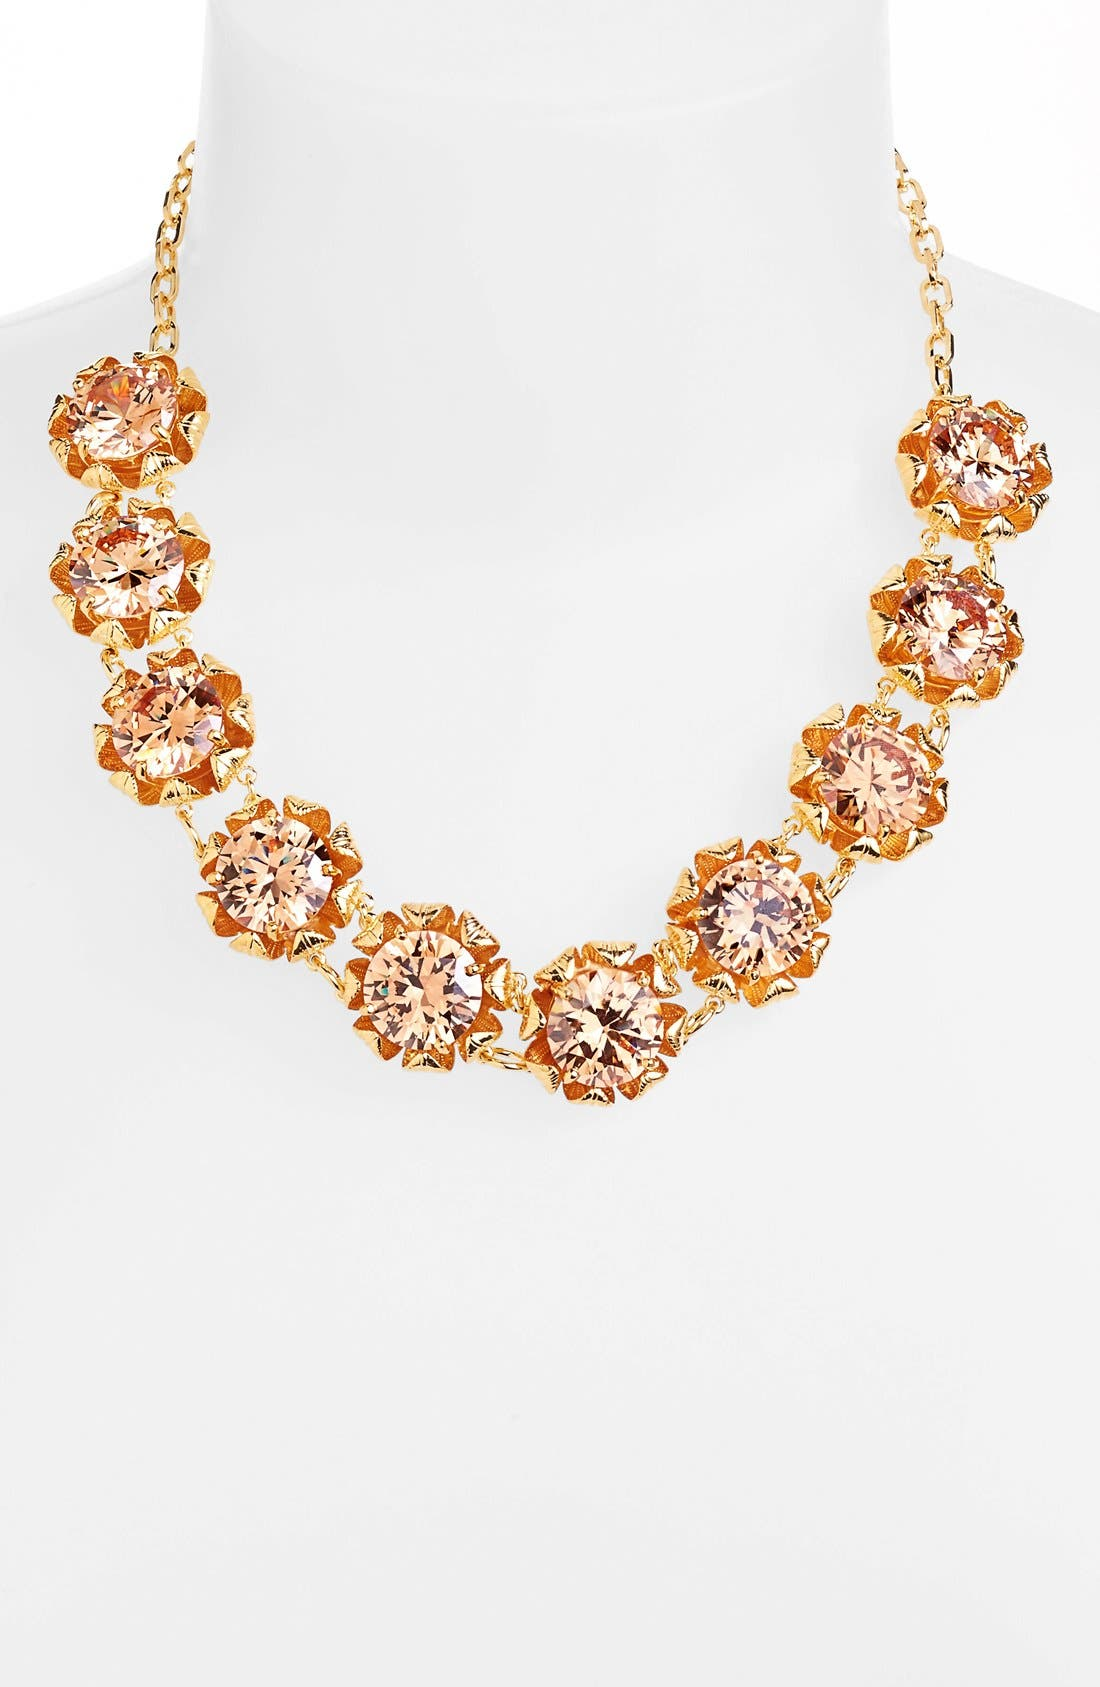 Main Image - Tory Burch 'Leah' Crystal Floral Necklace